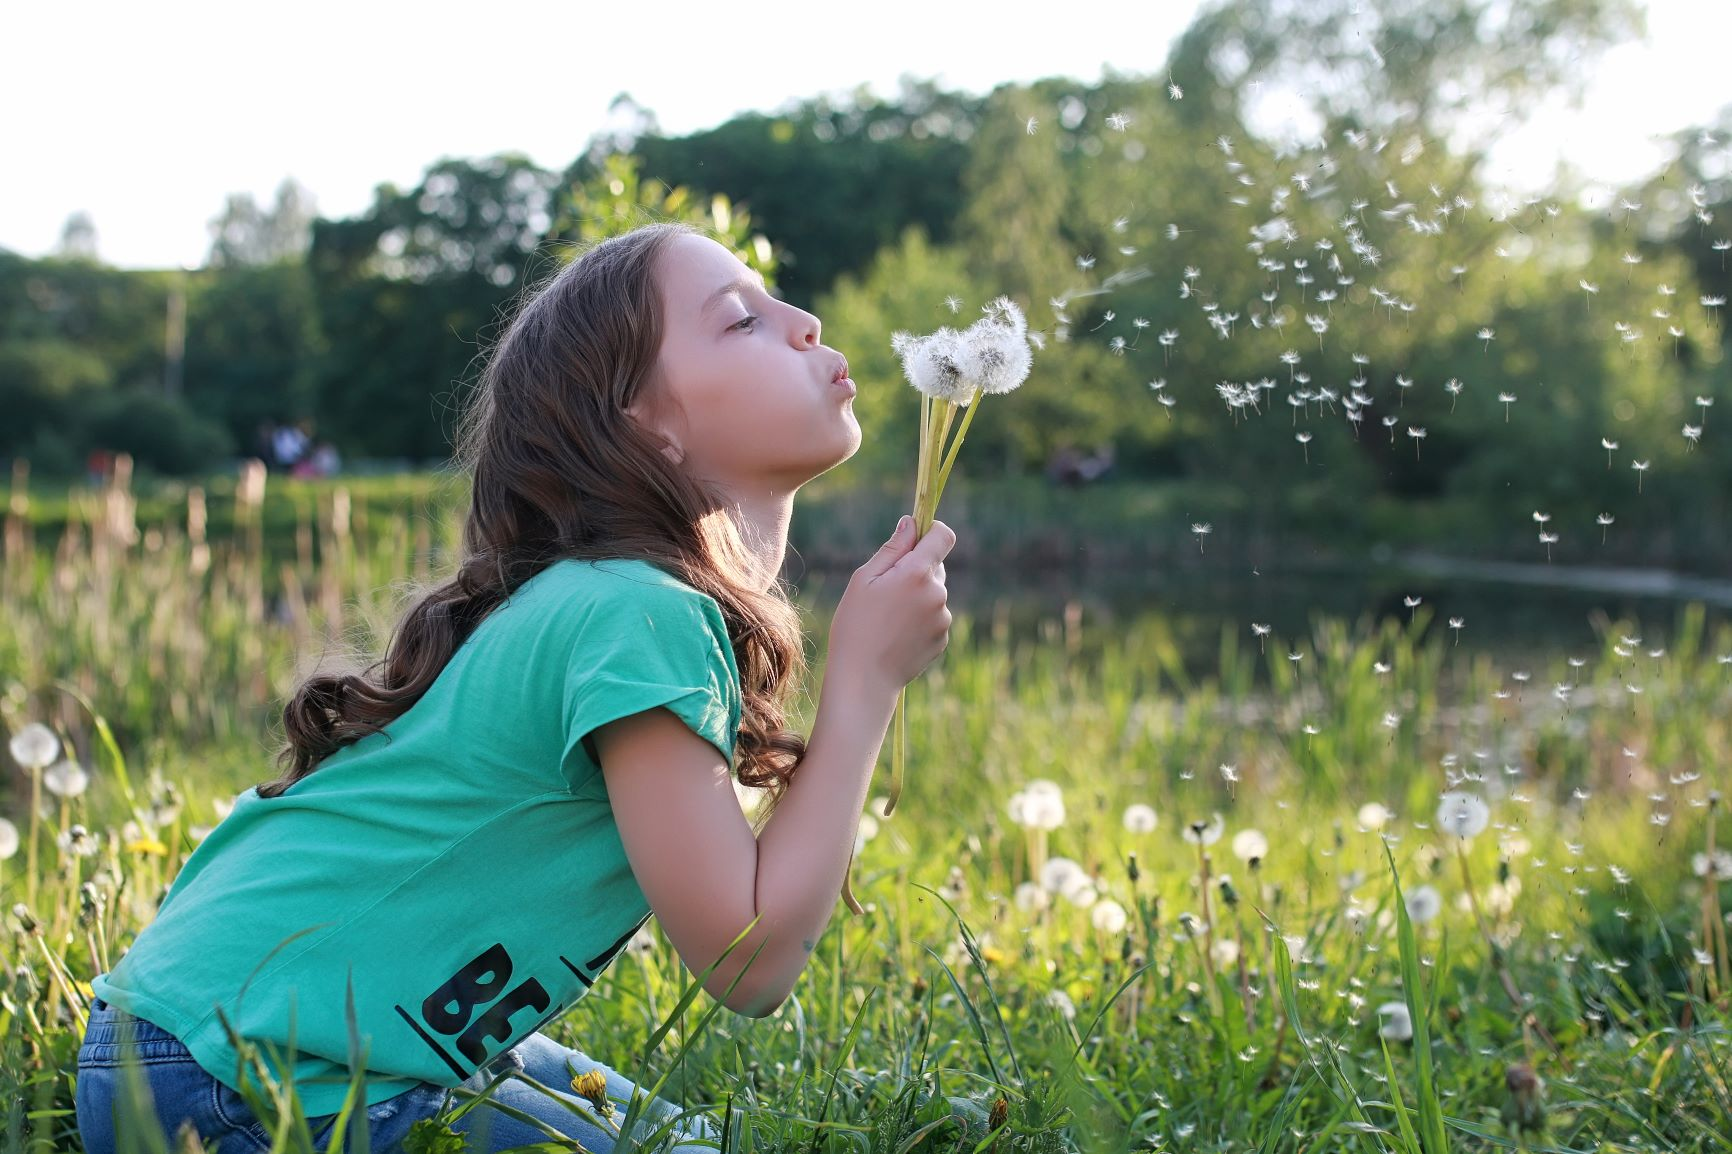 3. Canva - Teen blowing seeds from a dandelion flower in a spring park